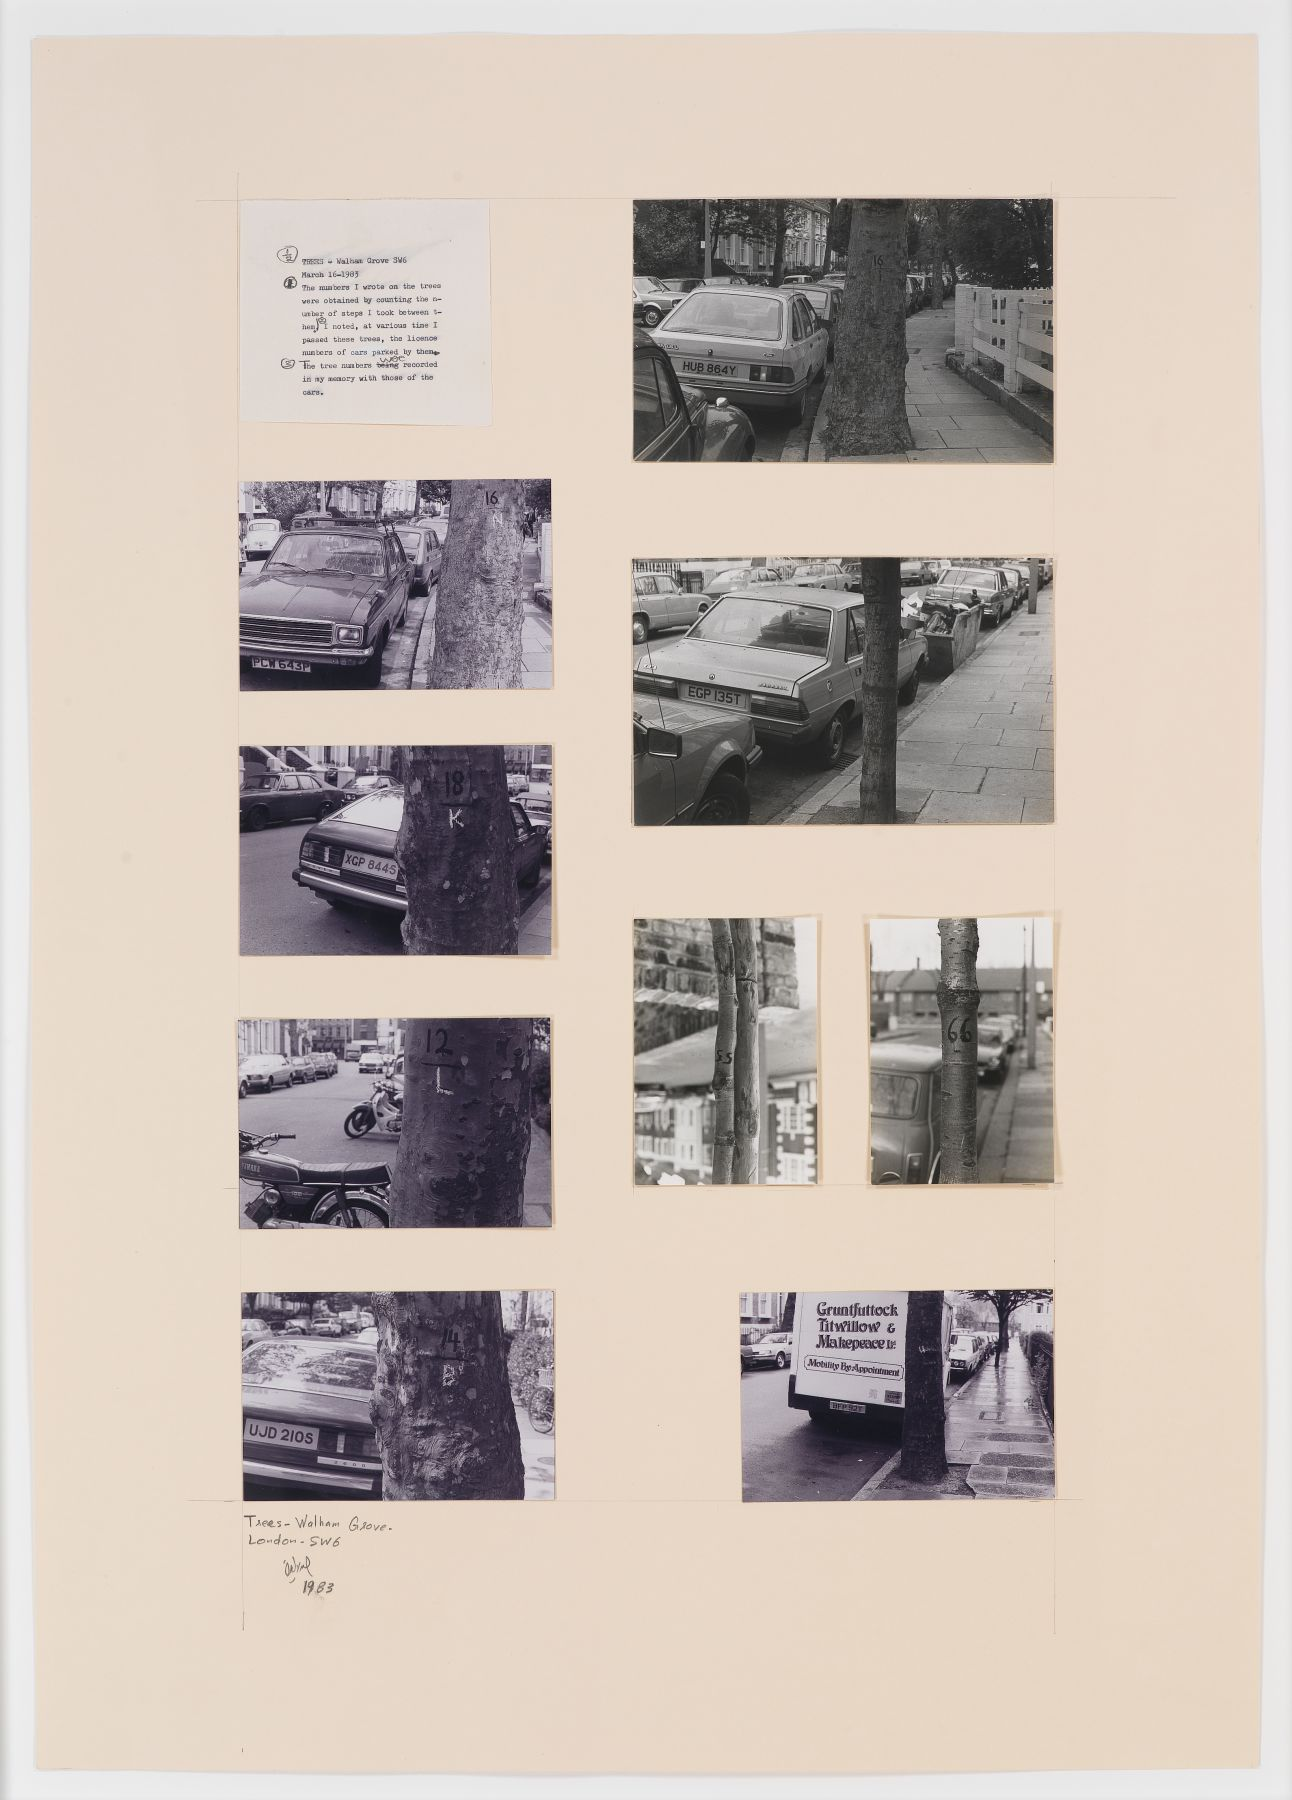 Trees - Walham Grow Road - London, 1983, Photographs and original text on paperboard